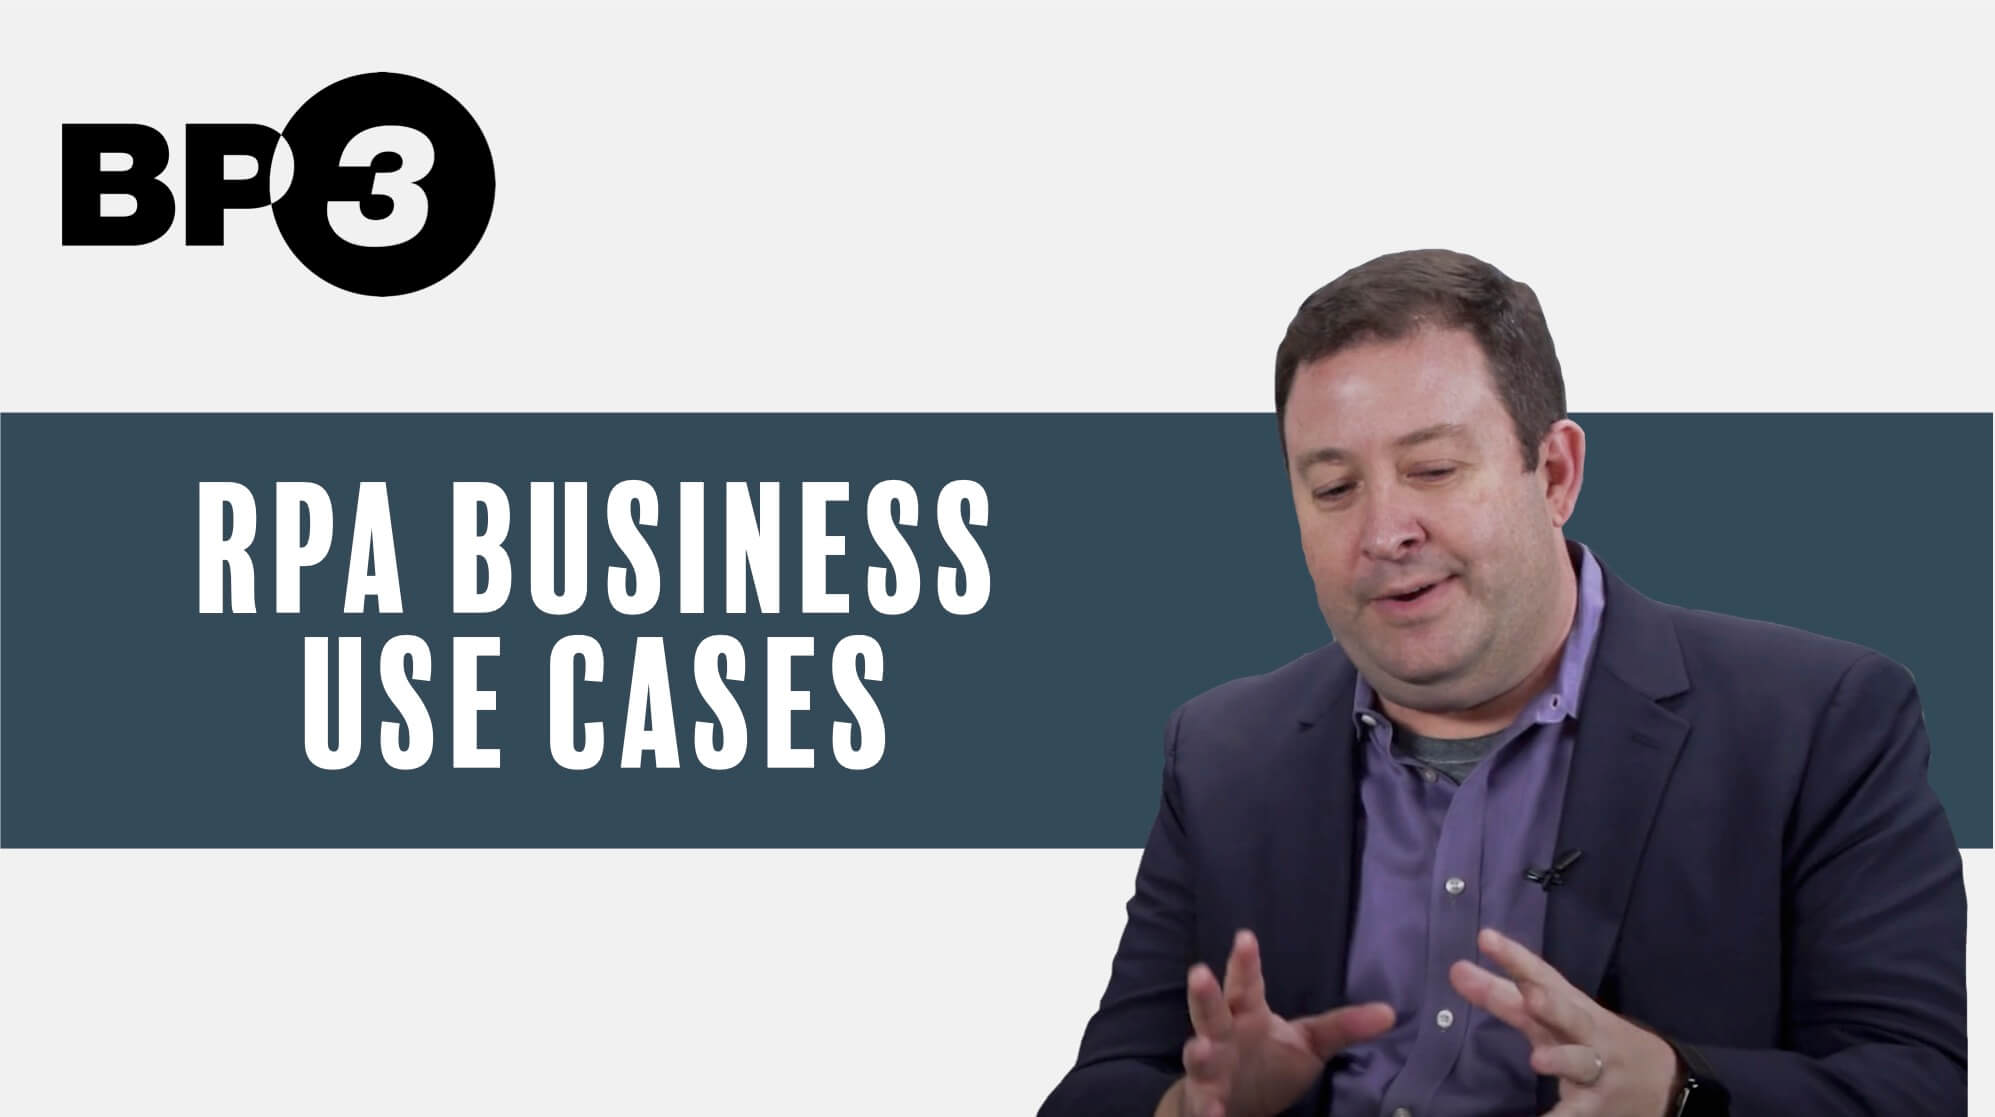 It seems like ages ago, but it was only December 2018 when we had our CEO, Scott Francis, sit down and talk with Krista White, about RPA business use cases.